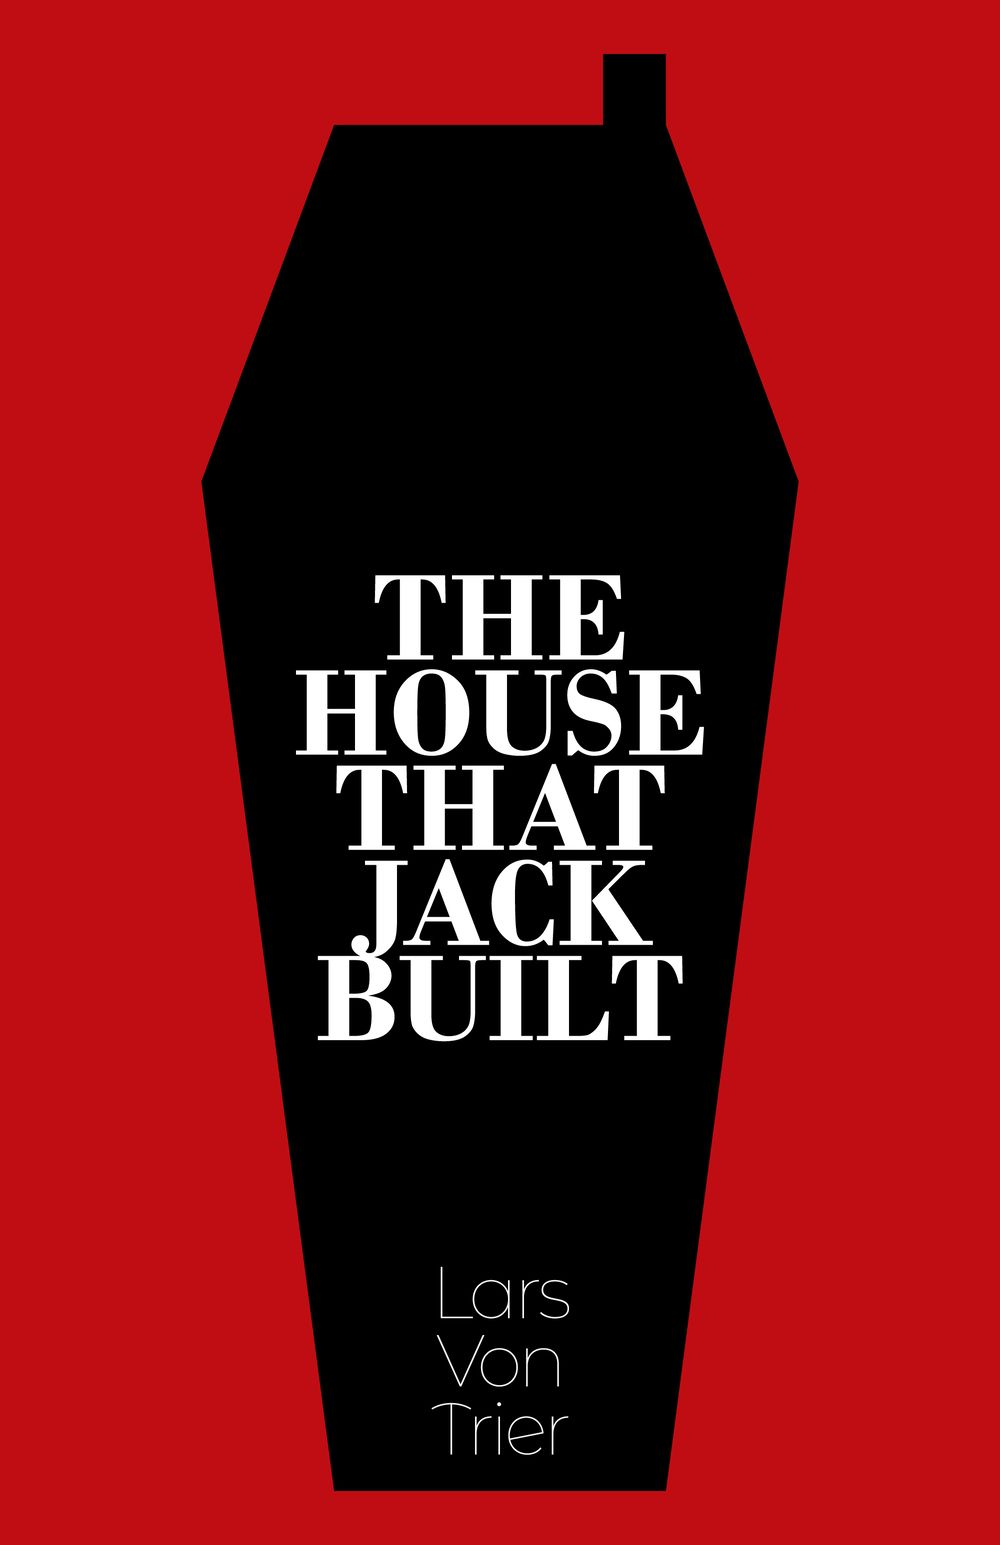 The House That Jack Built - image 3 - student project